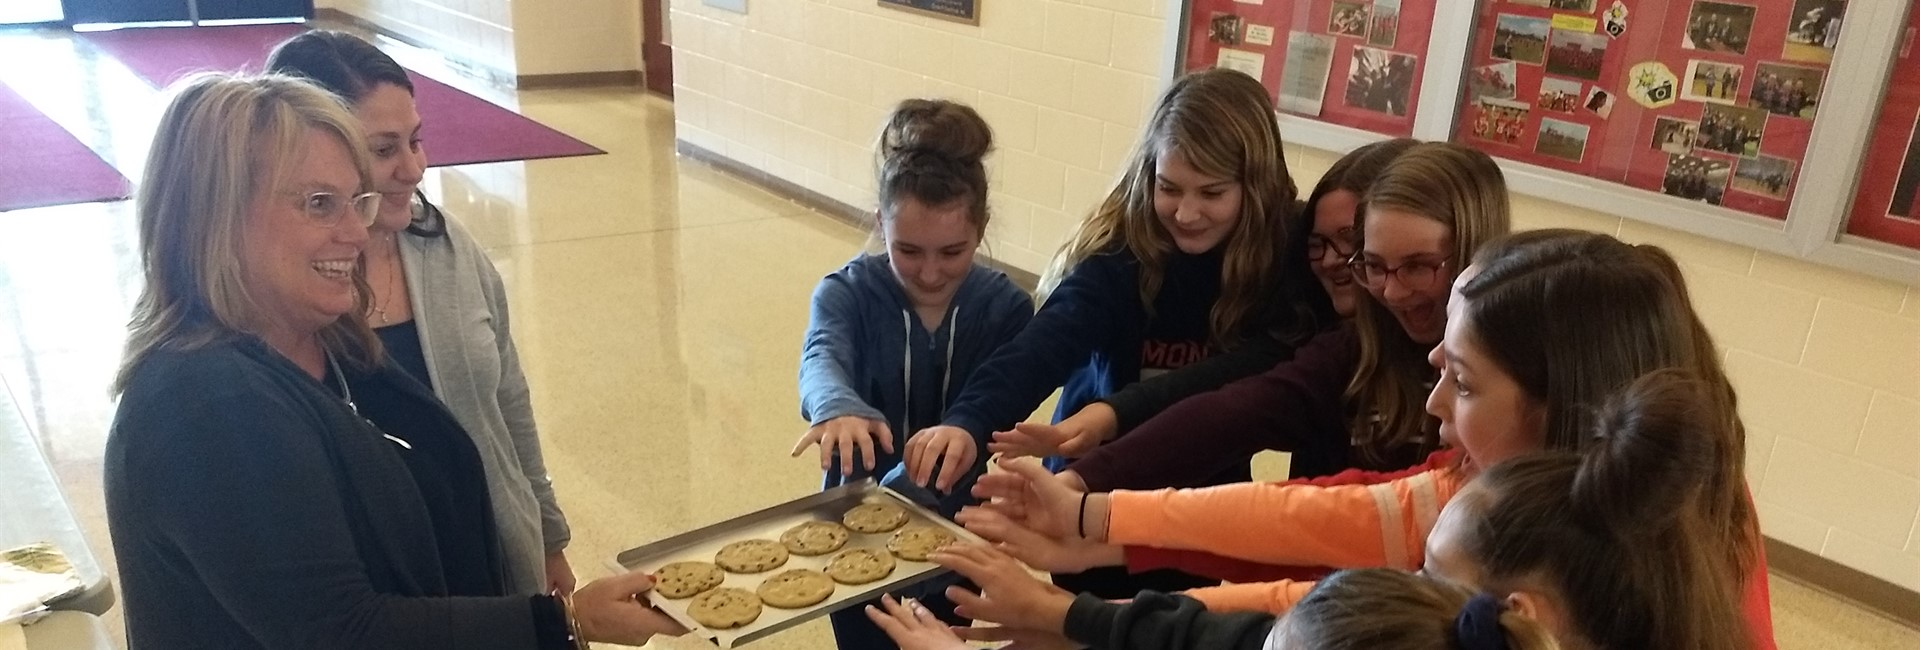 KVMS February 2019 Cookie Day